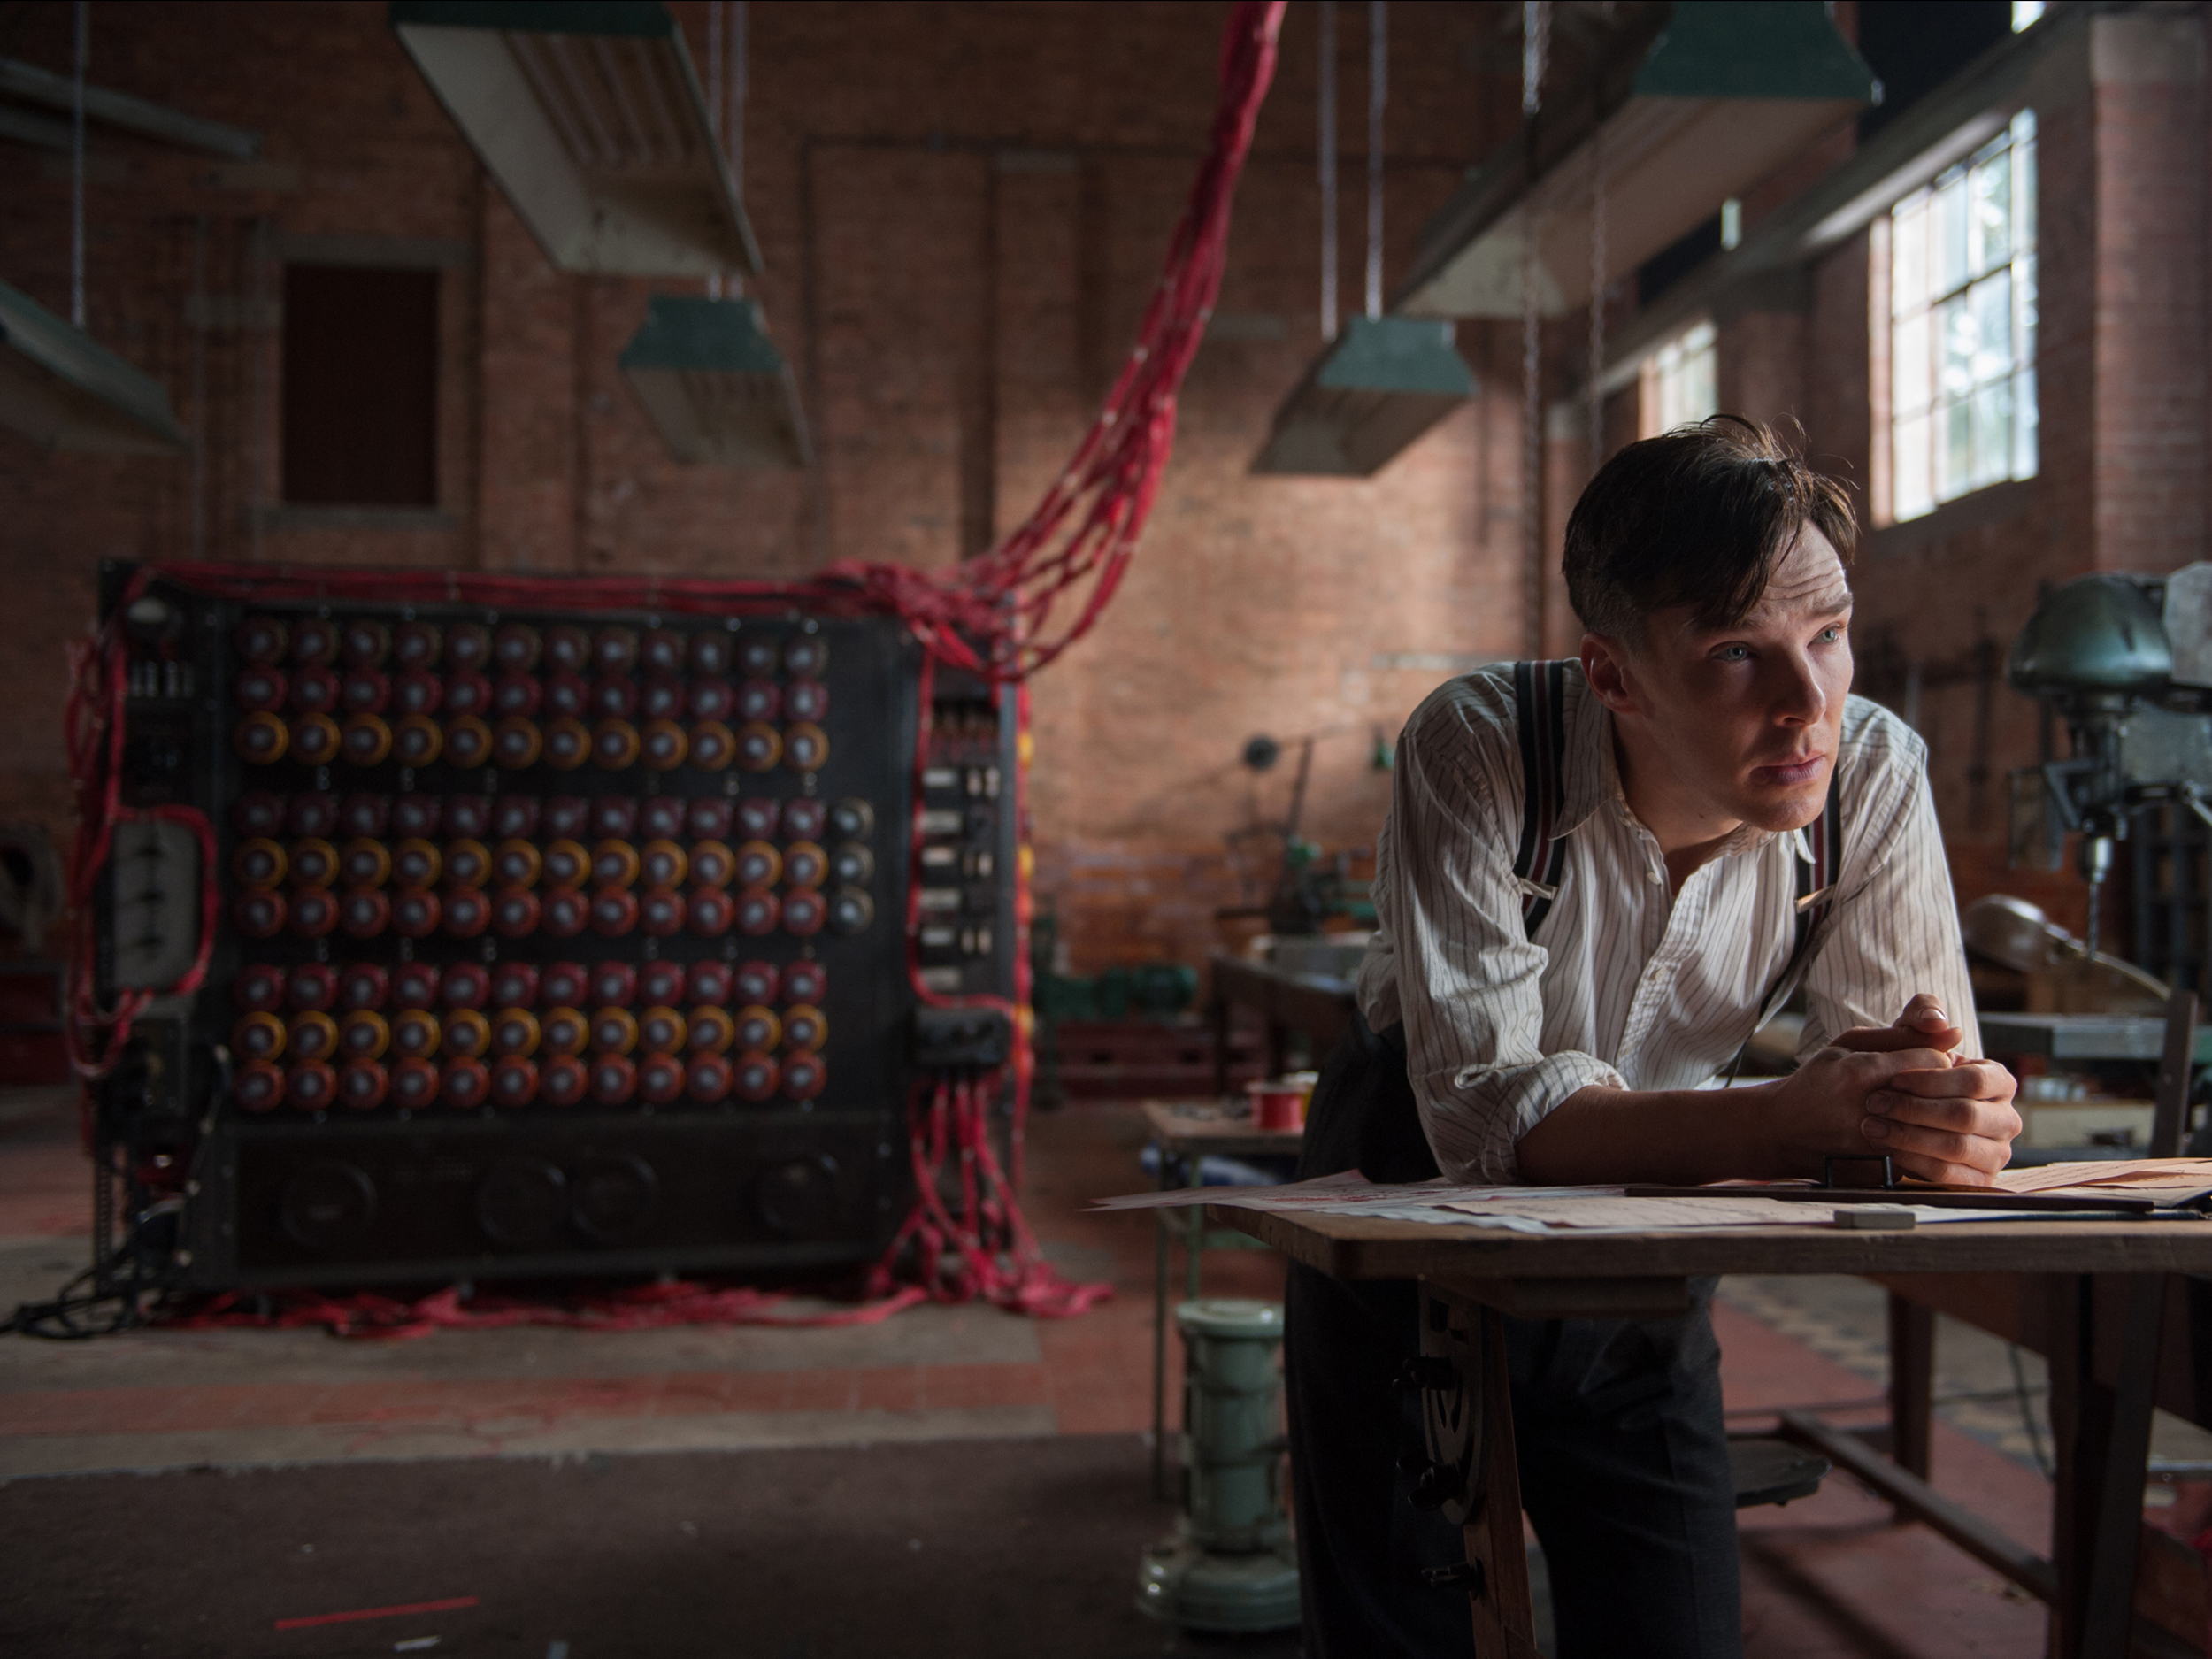 5. The Imitation Game - Bletchley Park, North of London